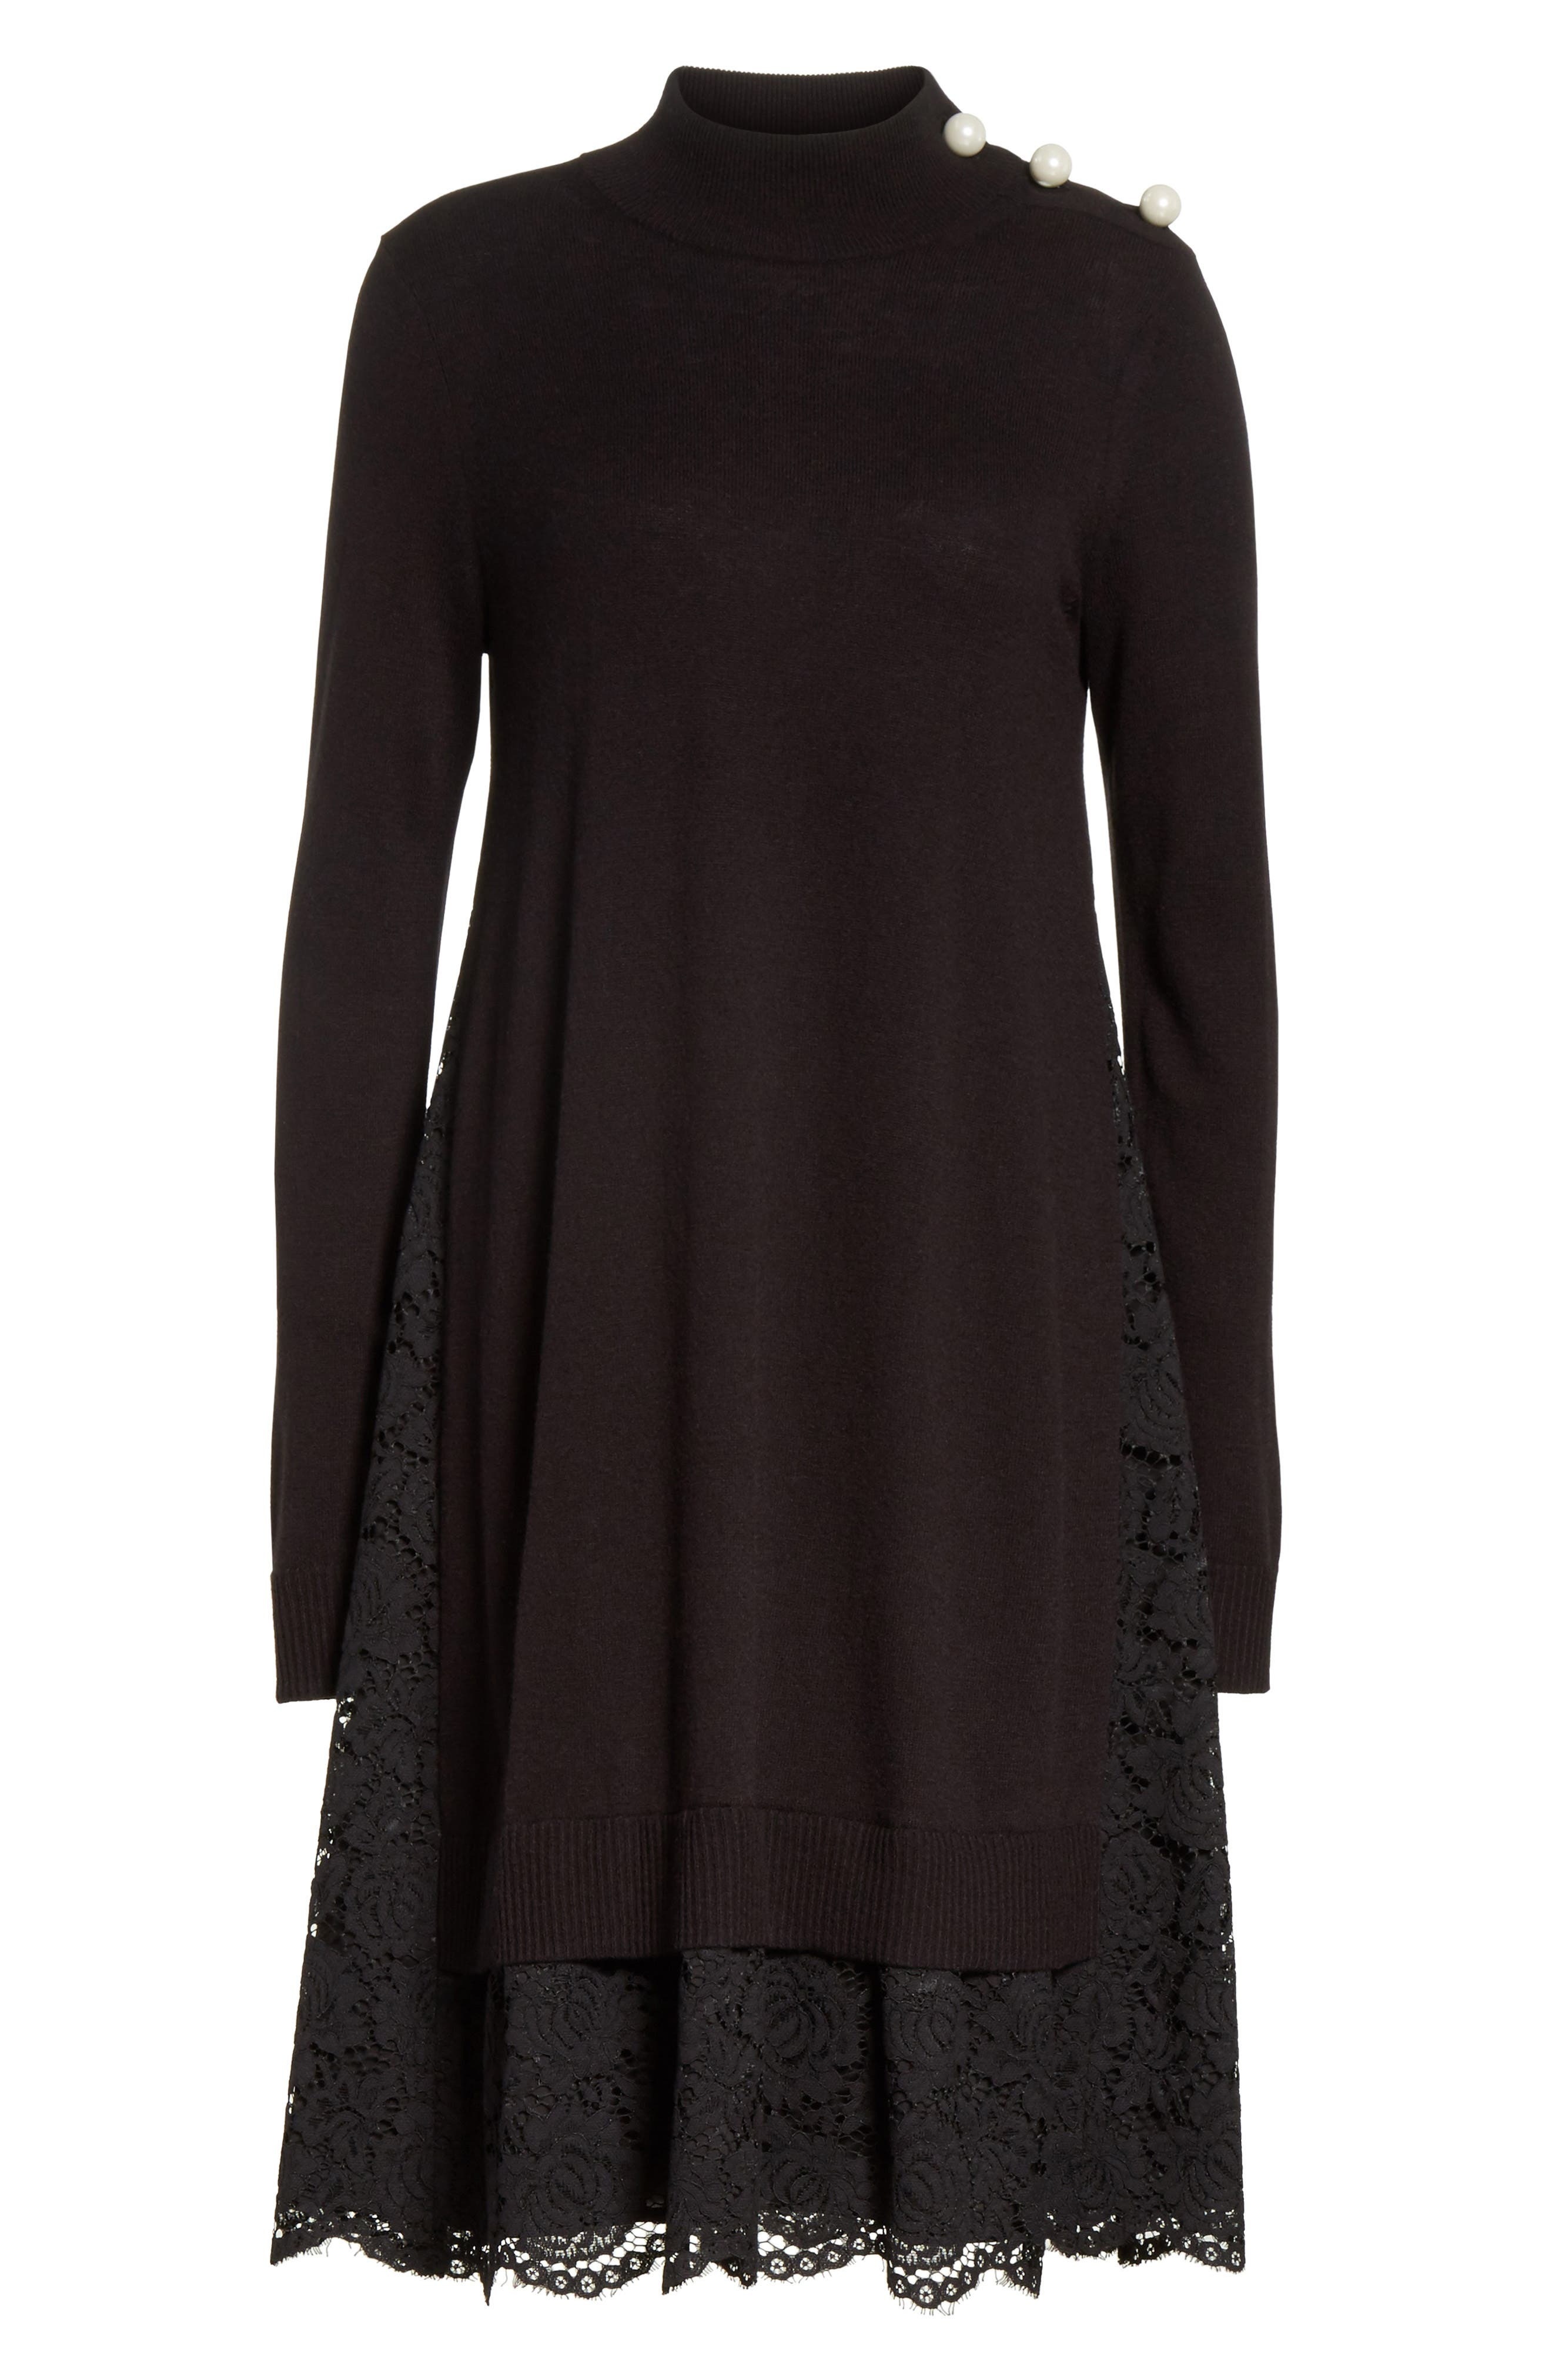 lace inset sweater dress,                             Alternate thumbnail 6, color,                             001